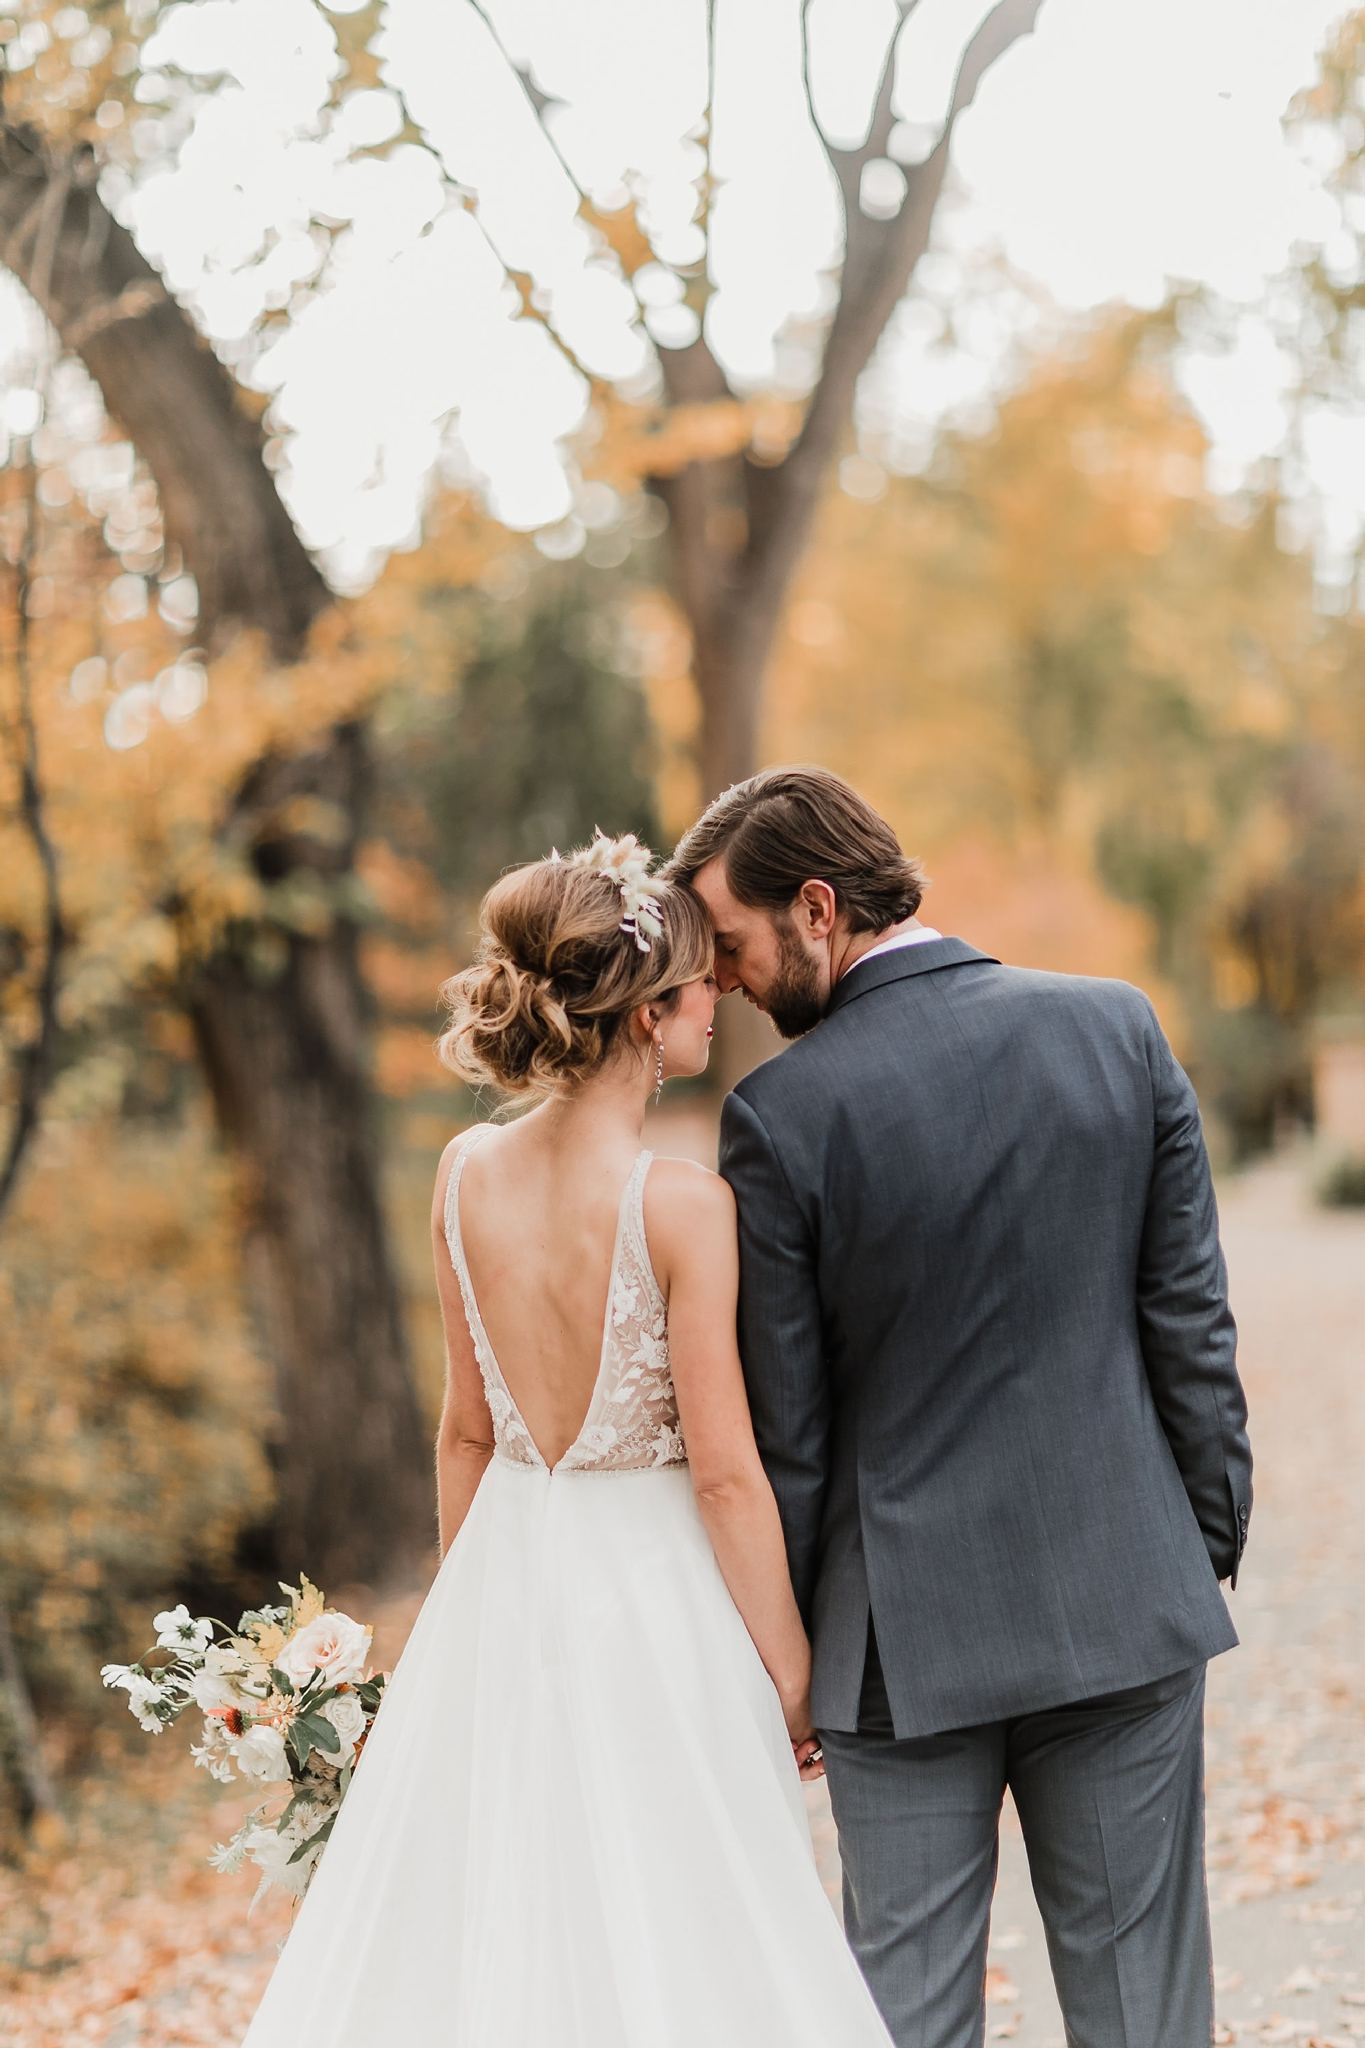 Alicia+lucia+photography+-+albuquerque+wedding+photographer+-+santa+fe+wedding+photography+-+new+mexico+wedding+photographer+-+new+mexico+wedding+-+albuquerque+wedding+-+rocky+mountain+bride+-+los+poblanos+wedding_0101.jpg